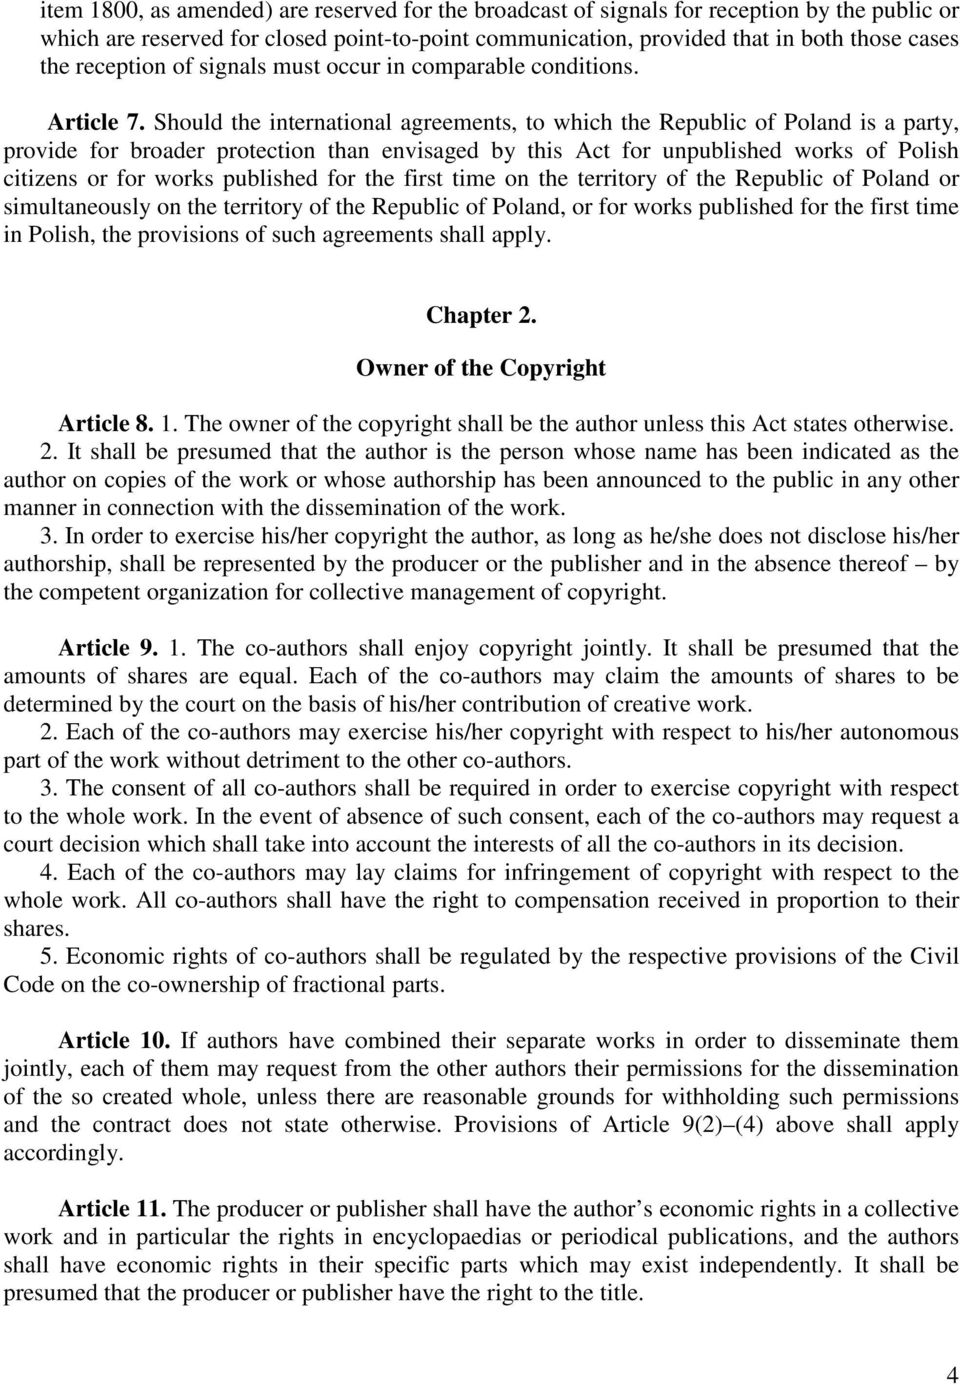 Should the international agreements, to which the Republic of Poland is a party, provide for broader protection than envisaged by this Act for unpublished works of Polish citizens or for works